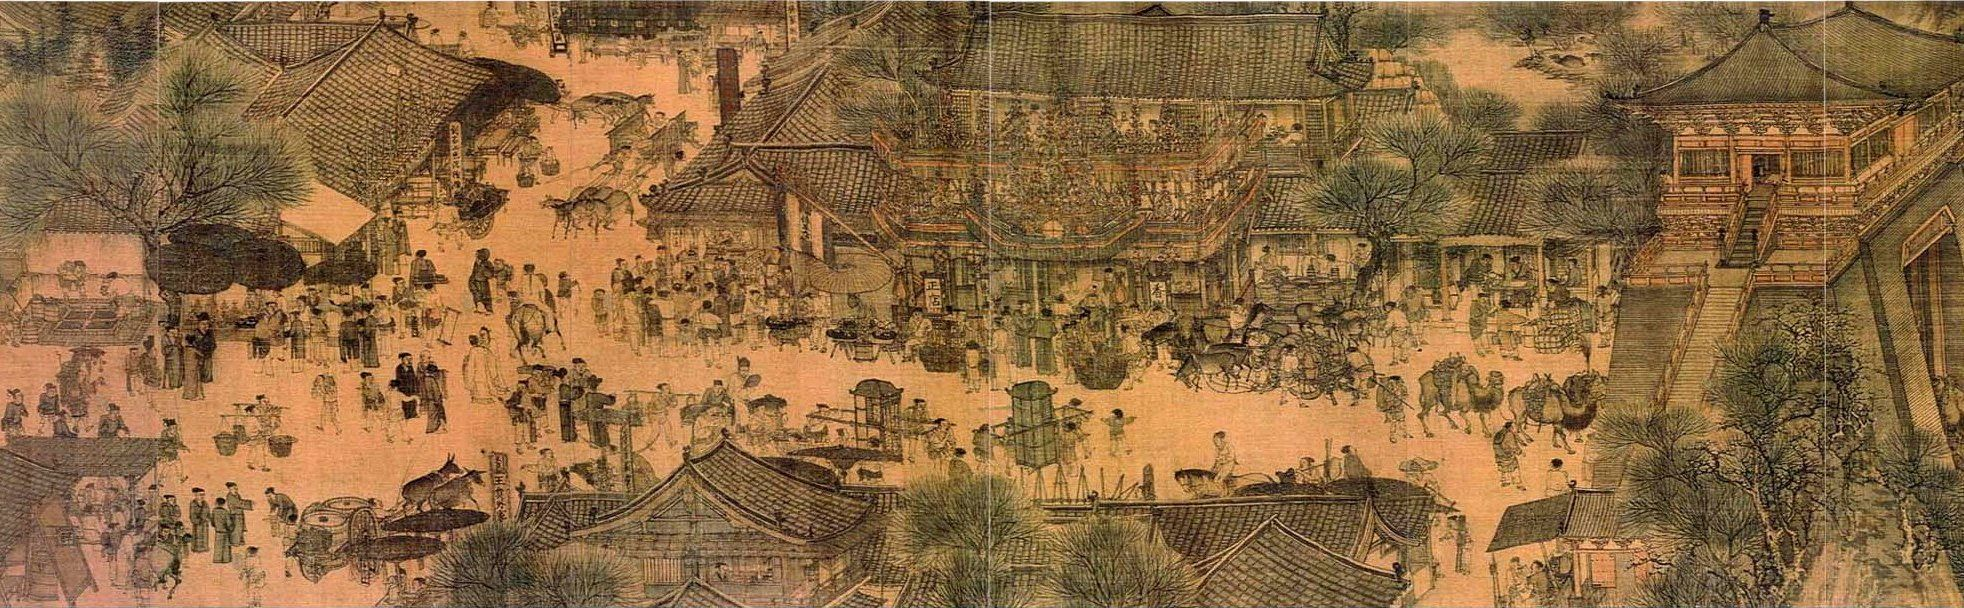 """zhang zeduan (1085–1145) - """"riverside scene at qingming festival"""" (detail, far left) - the scroll is 25.5 centimeters (10.03 inches) in height and 5.25 meters (5.74 yards) long"""